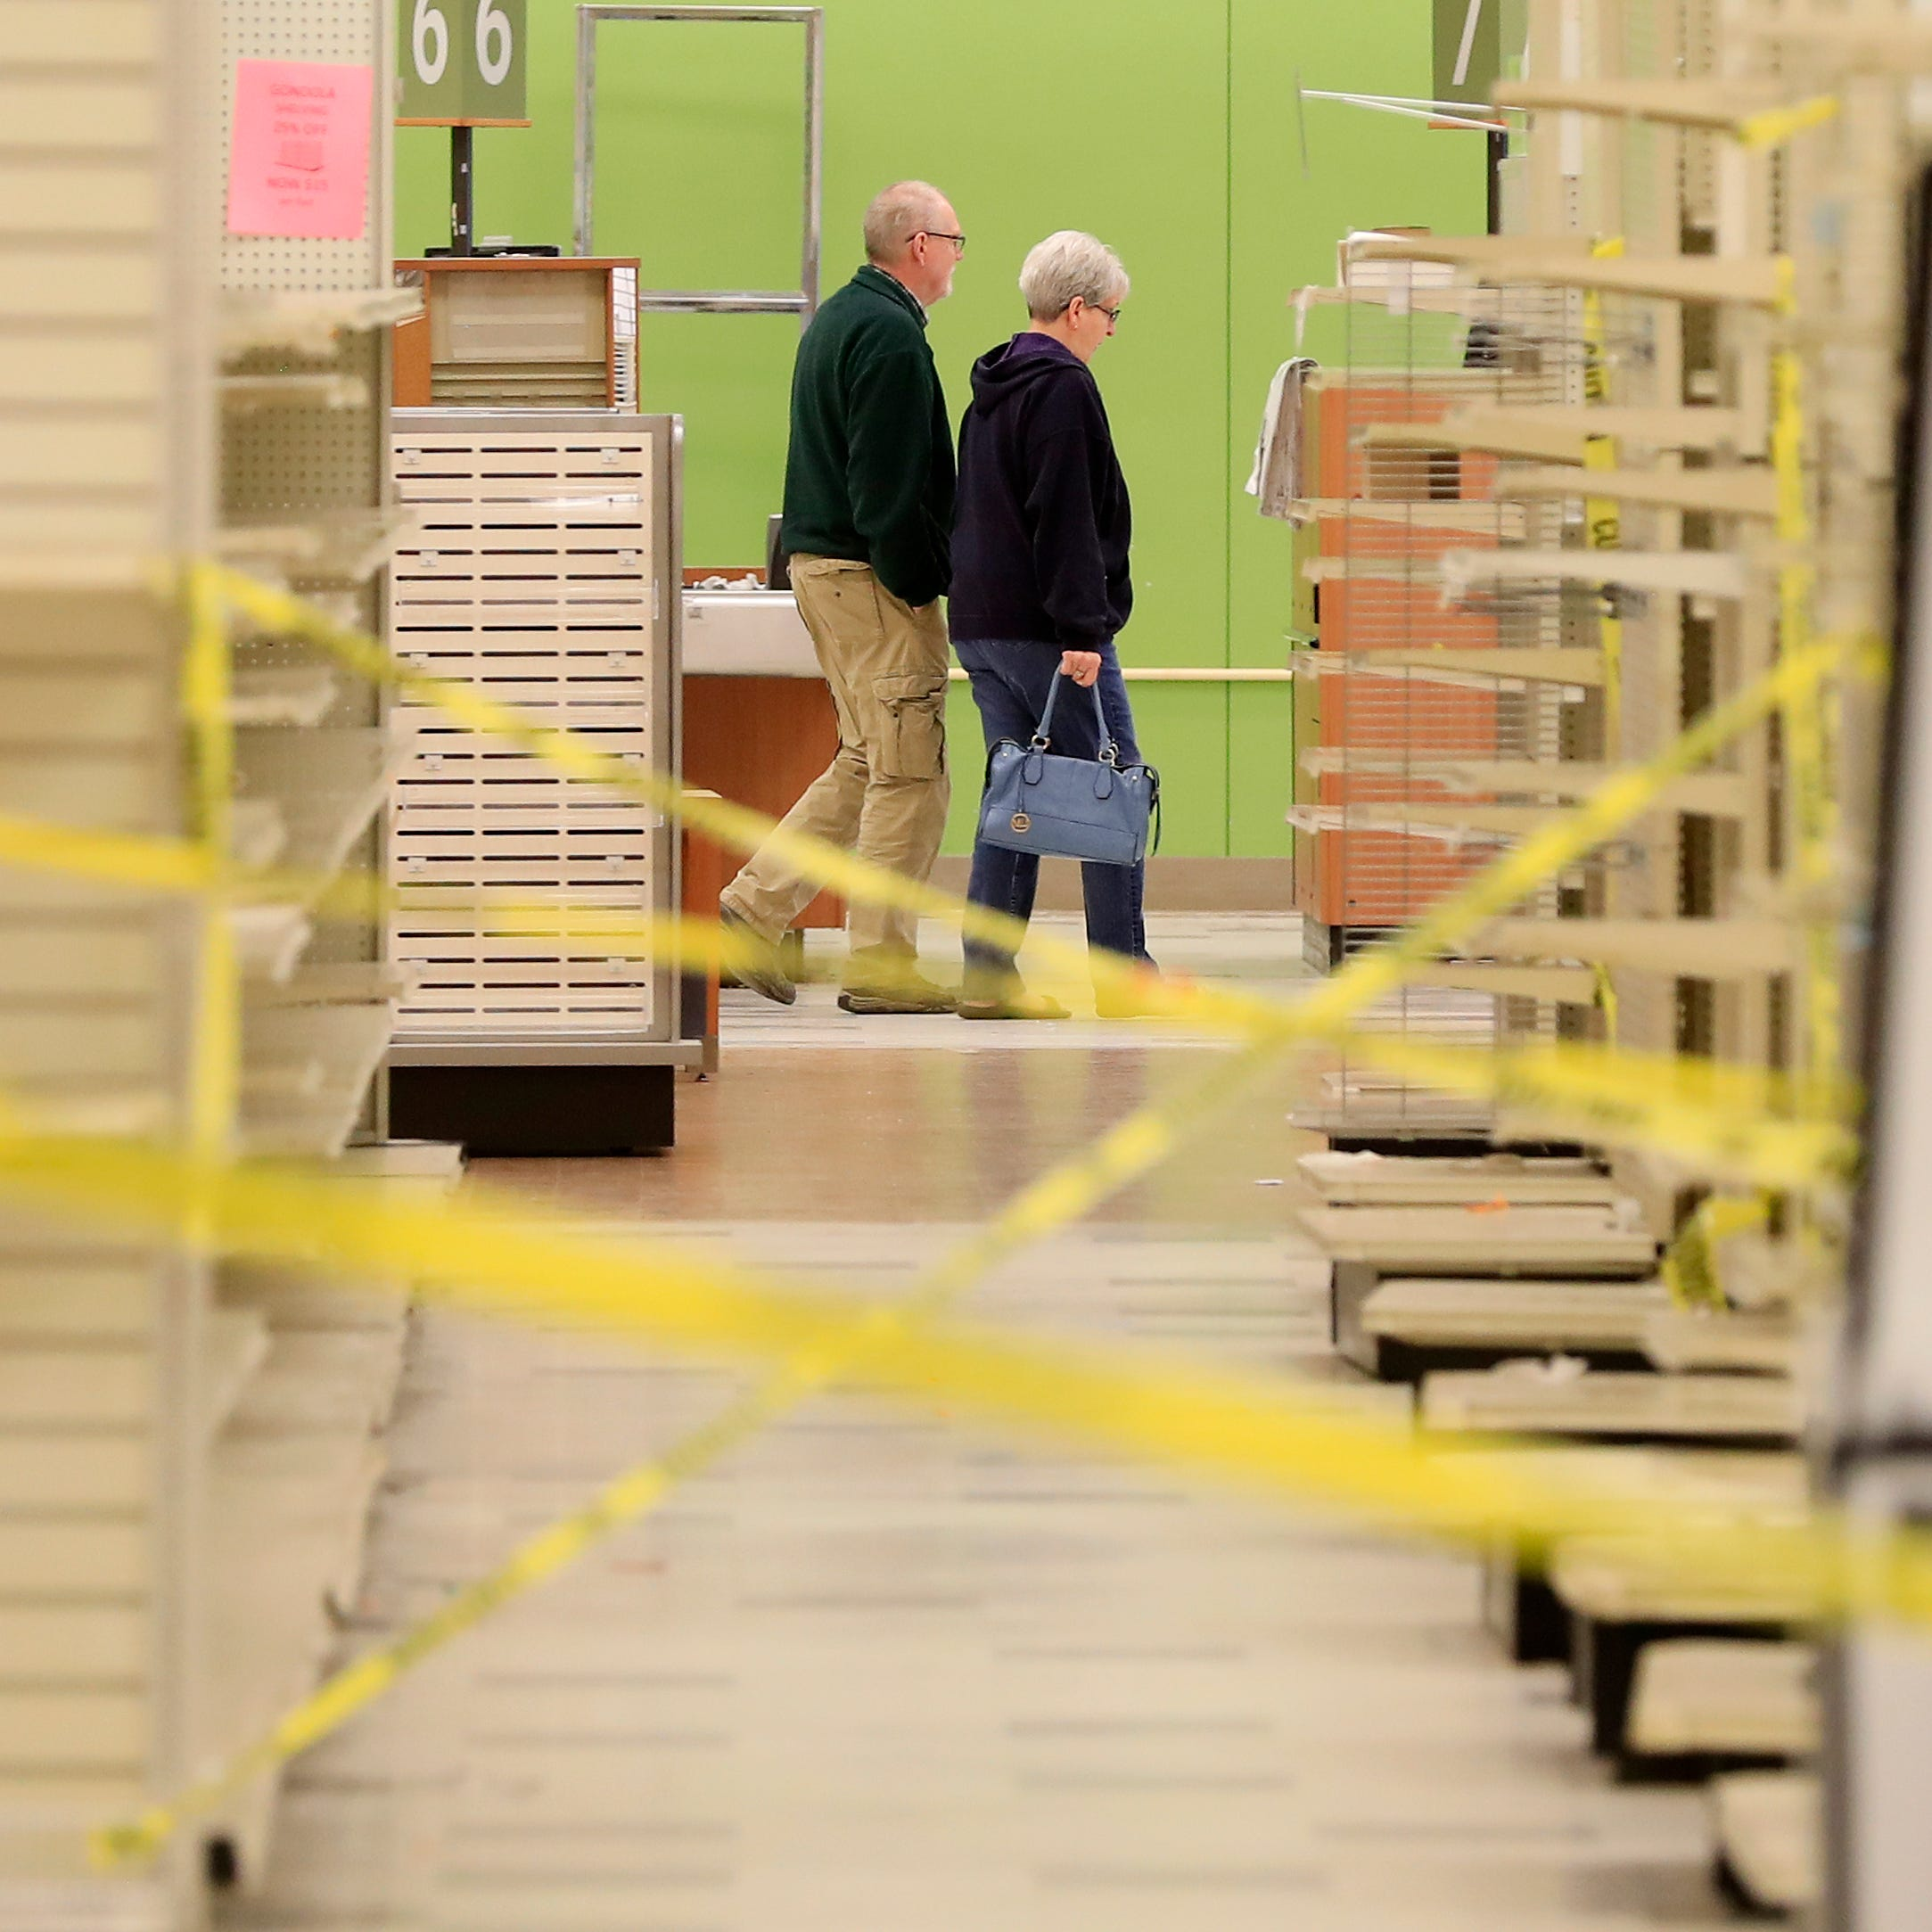 'There were memories here':  Shopko store where business was born ends 57-year run